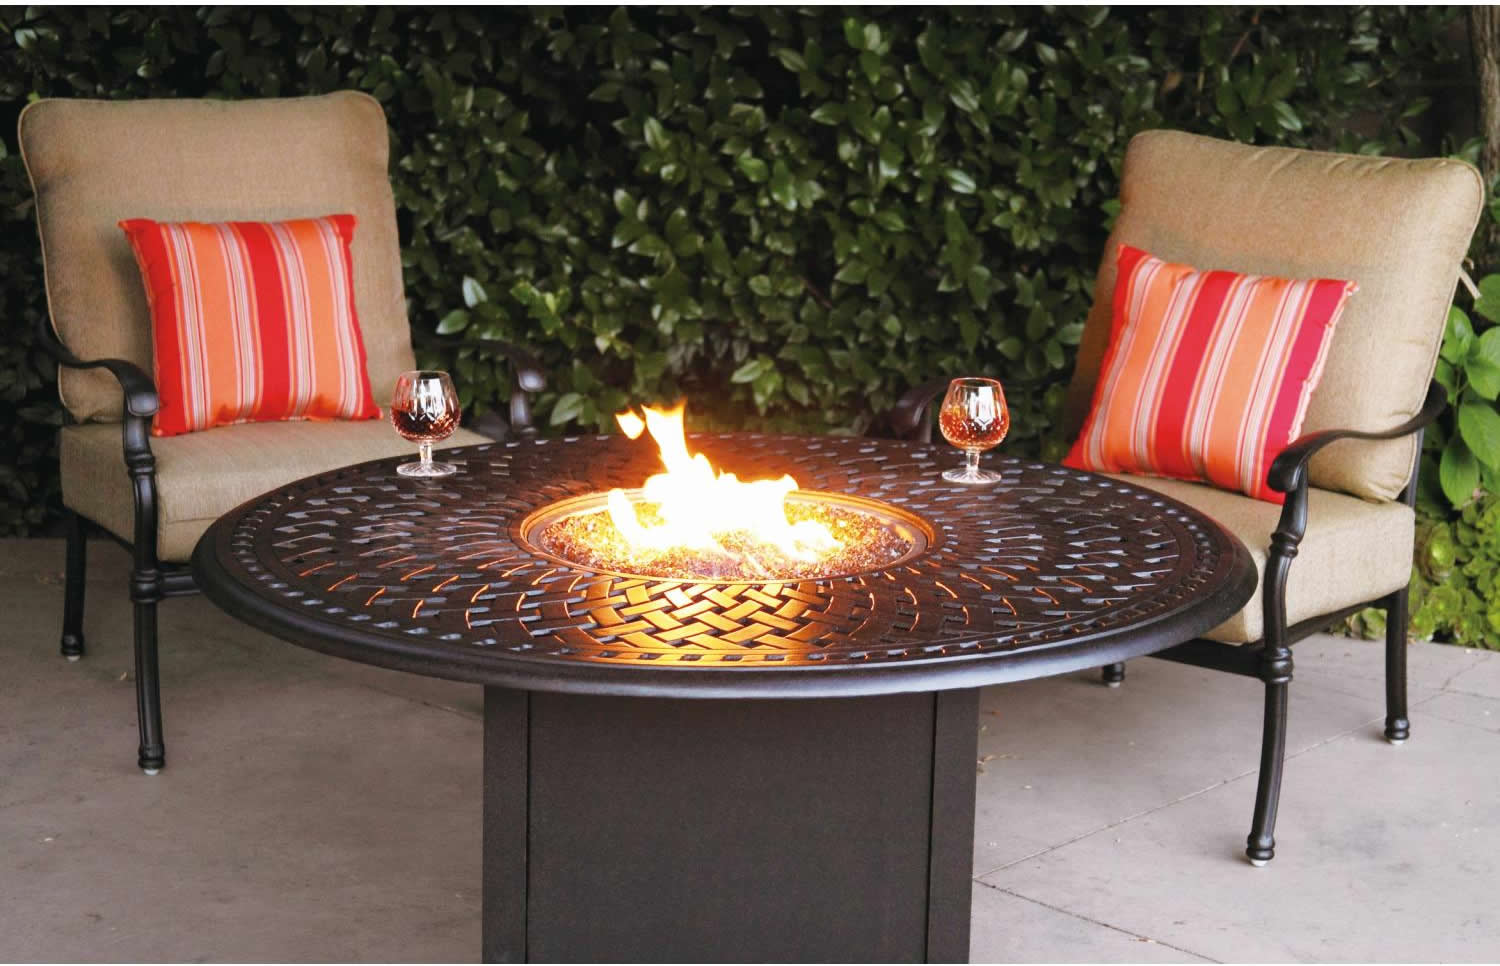 Patio Furniture Deep Seating Set Cast Aluminum 52 Propane Fire Pit Chat Table 3pc Florence